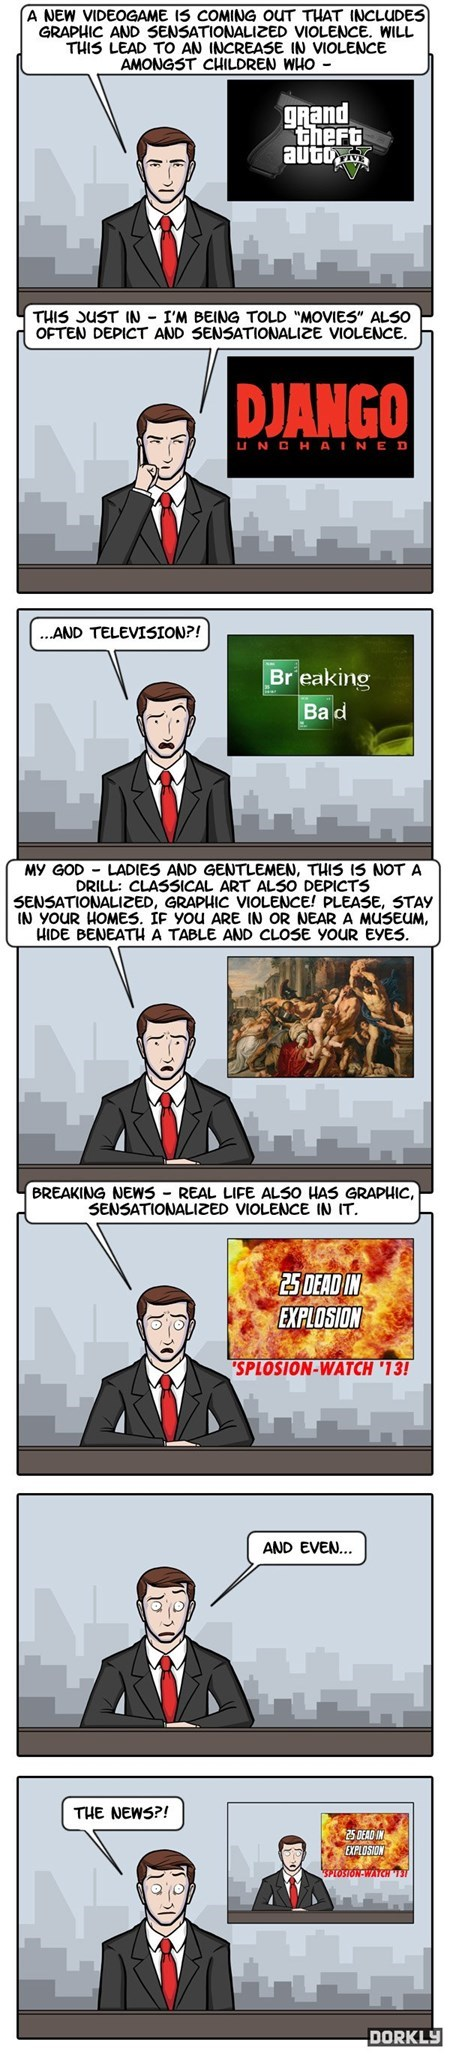 news,Videogames,violences,funny,web comics